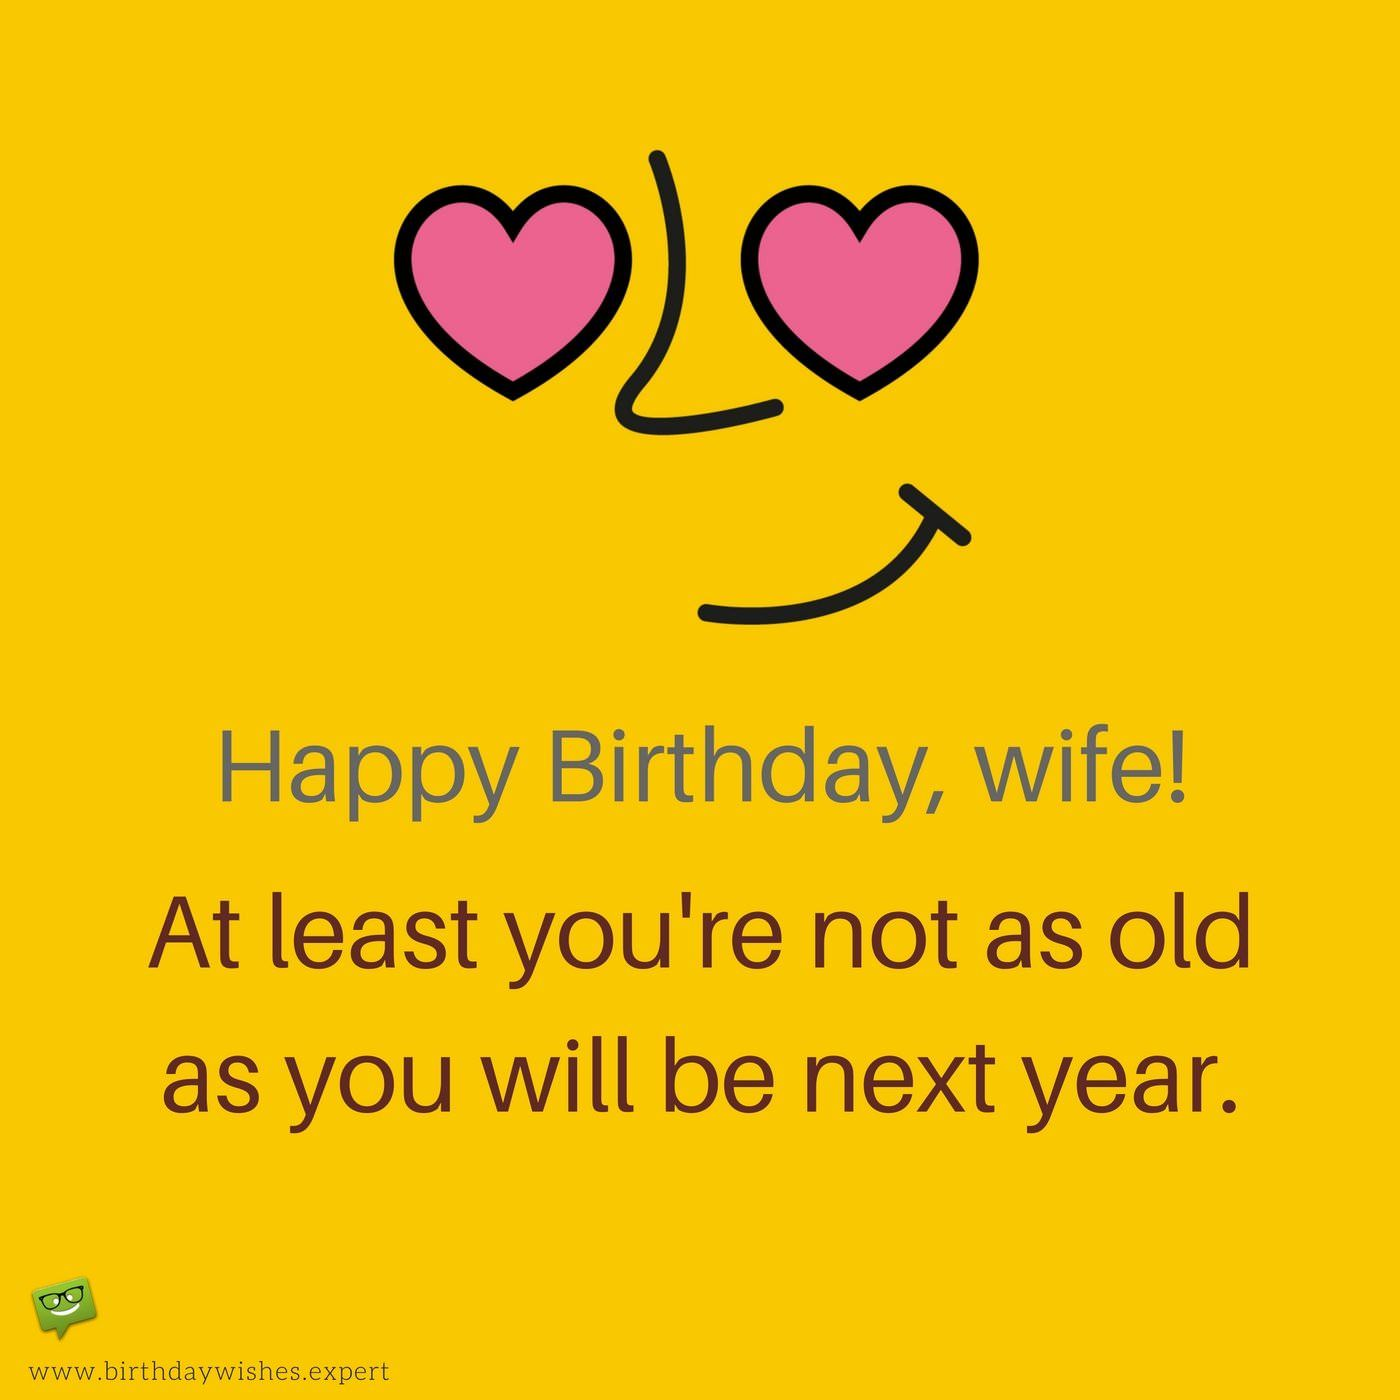 Make her Smile : Funny Birthday Wishes for your Wife ...